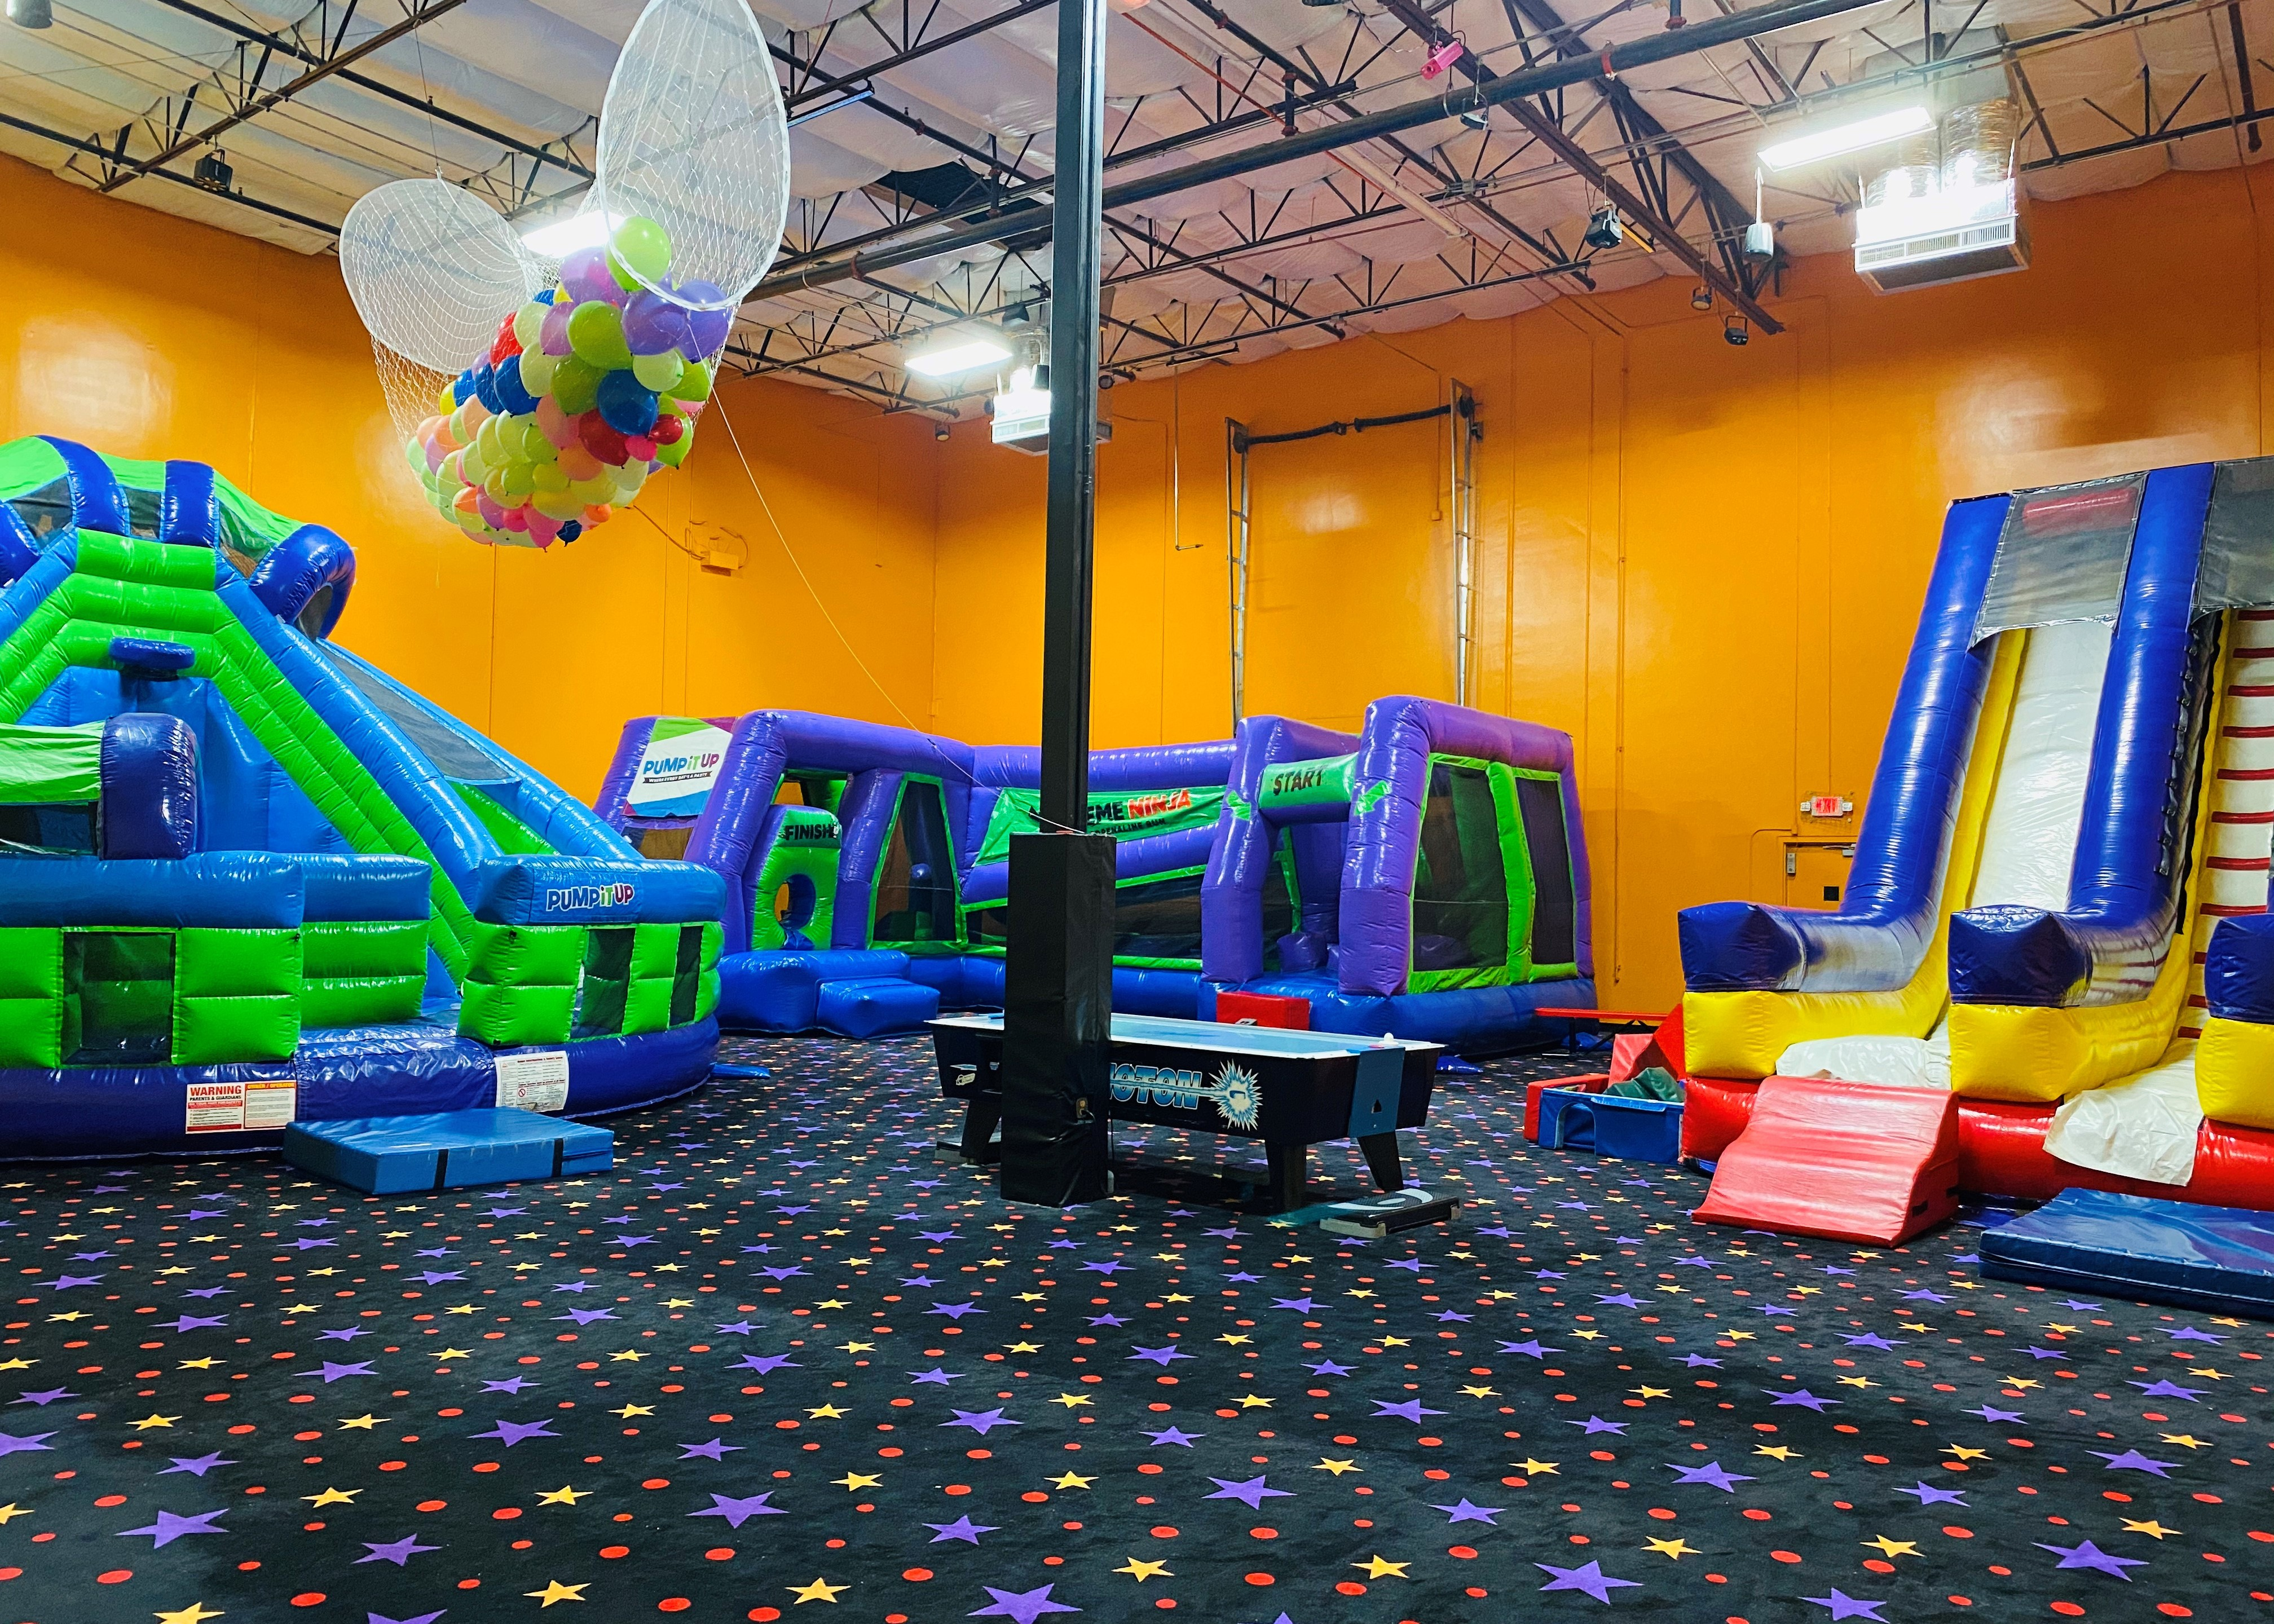 Pump It Up private party arena space with three large inflatables for kids to play.